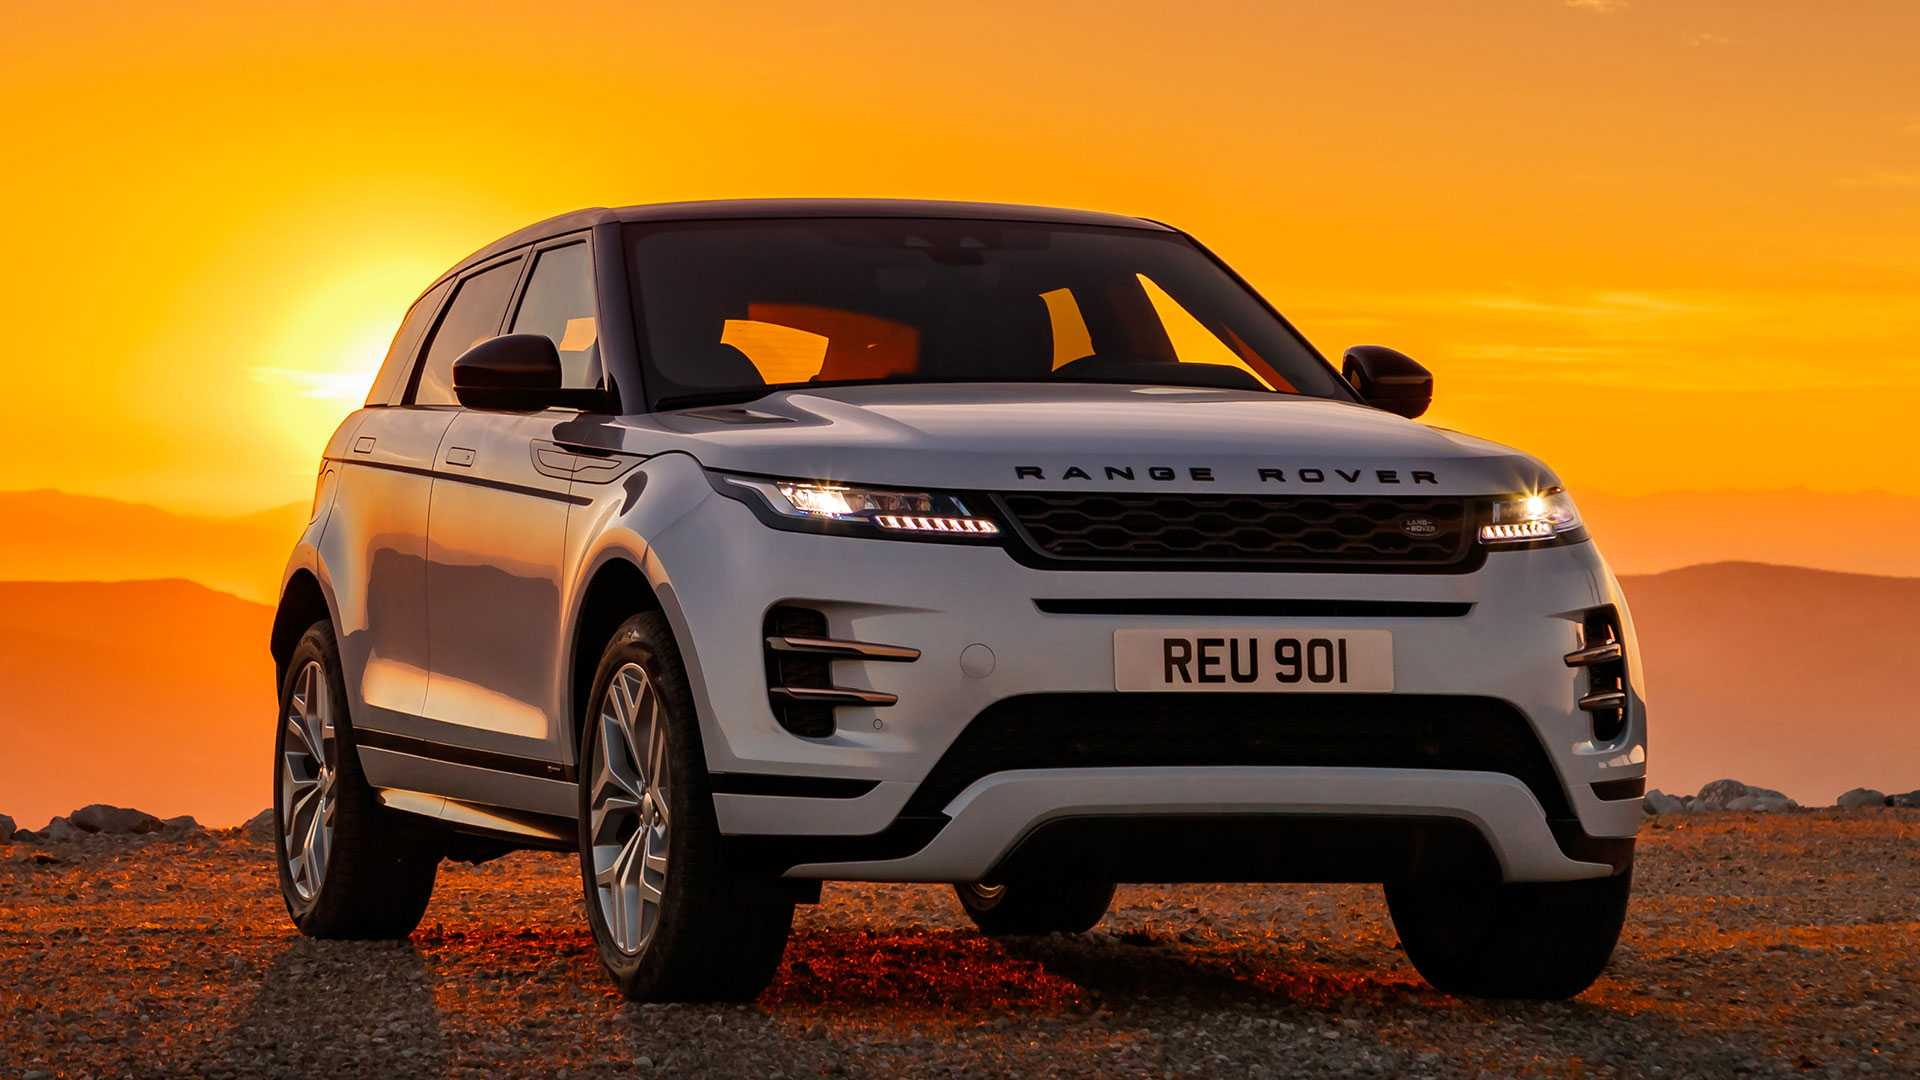 2020 Land Rover Range Rover Sport: Changes, Equipment, Price >> 2020 Land Rover Range Rover Evoque First Drive Slow And